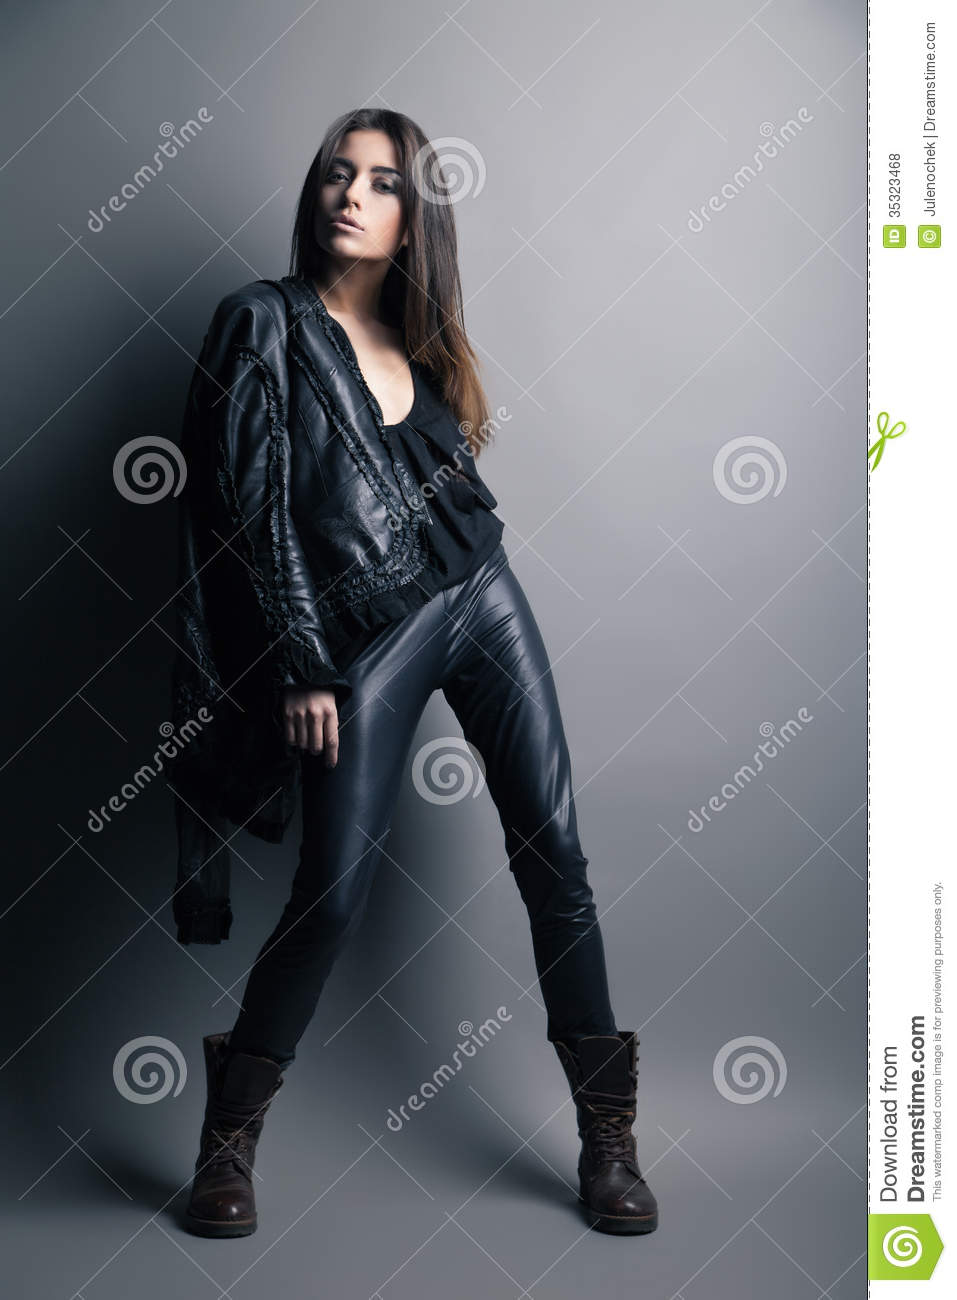 Fashion Model Wearing Leather Pants And Jacket Royalty ...